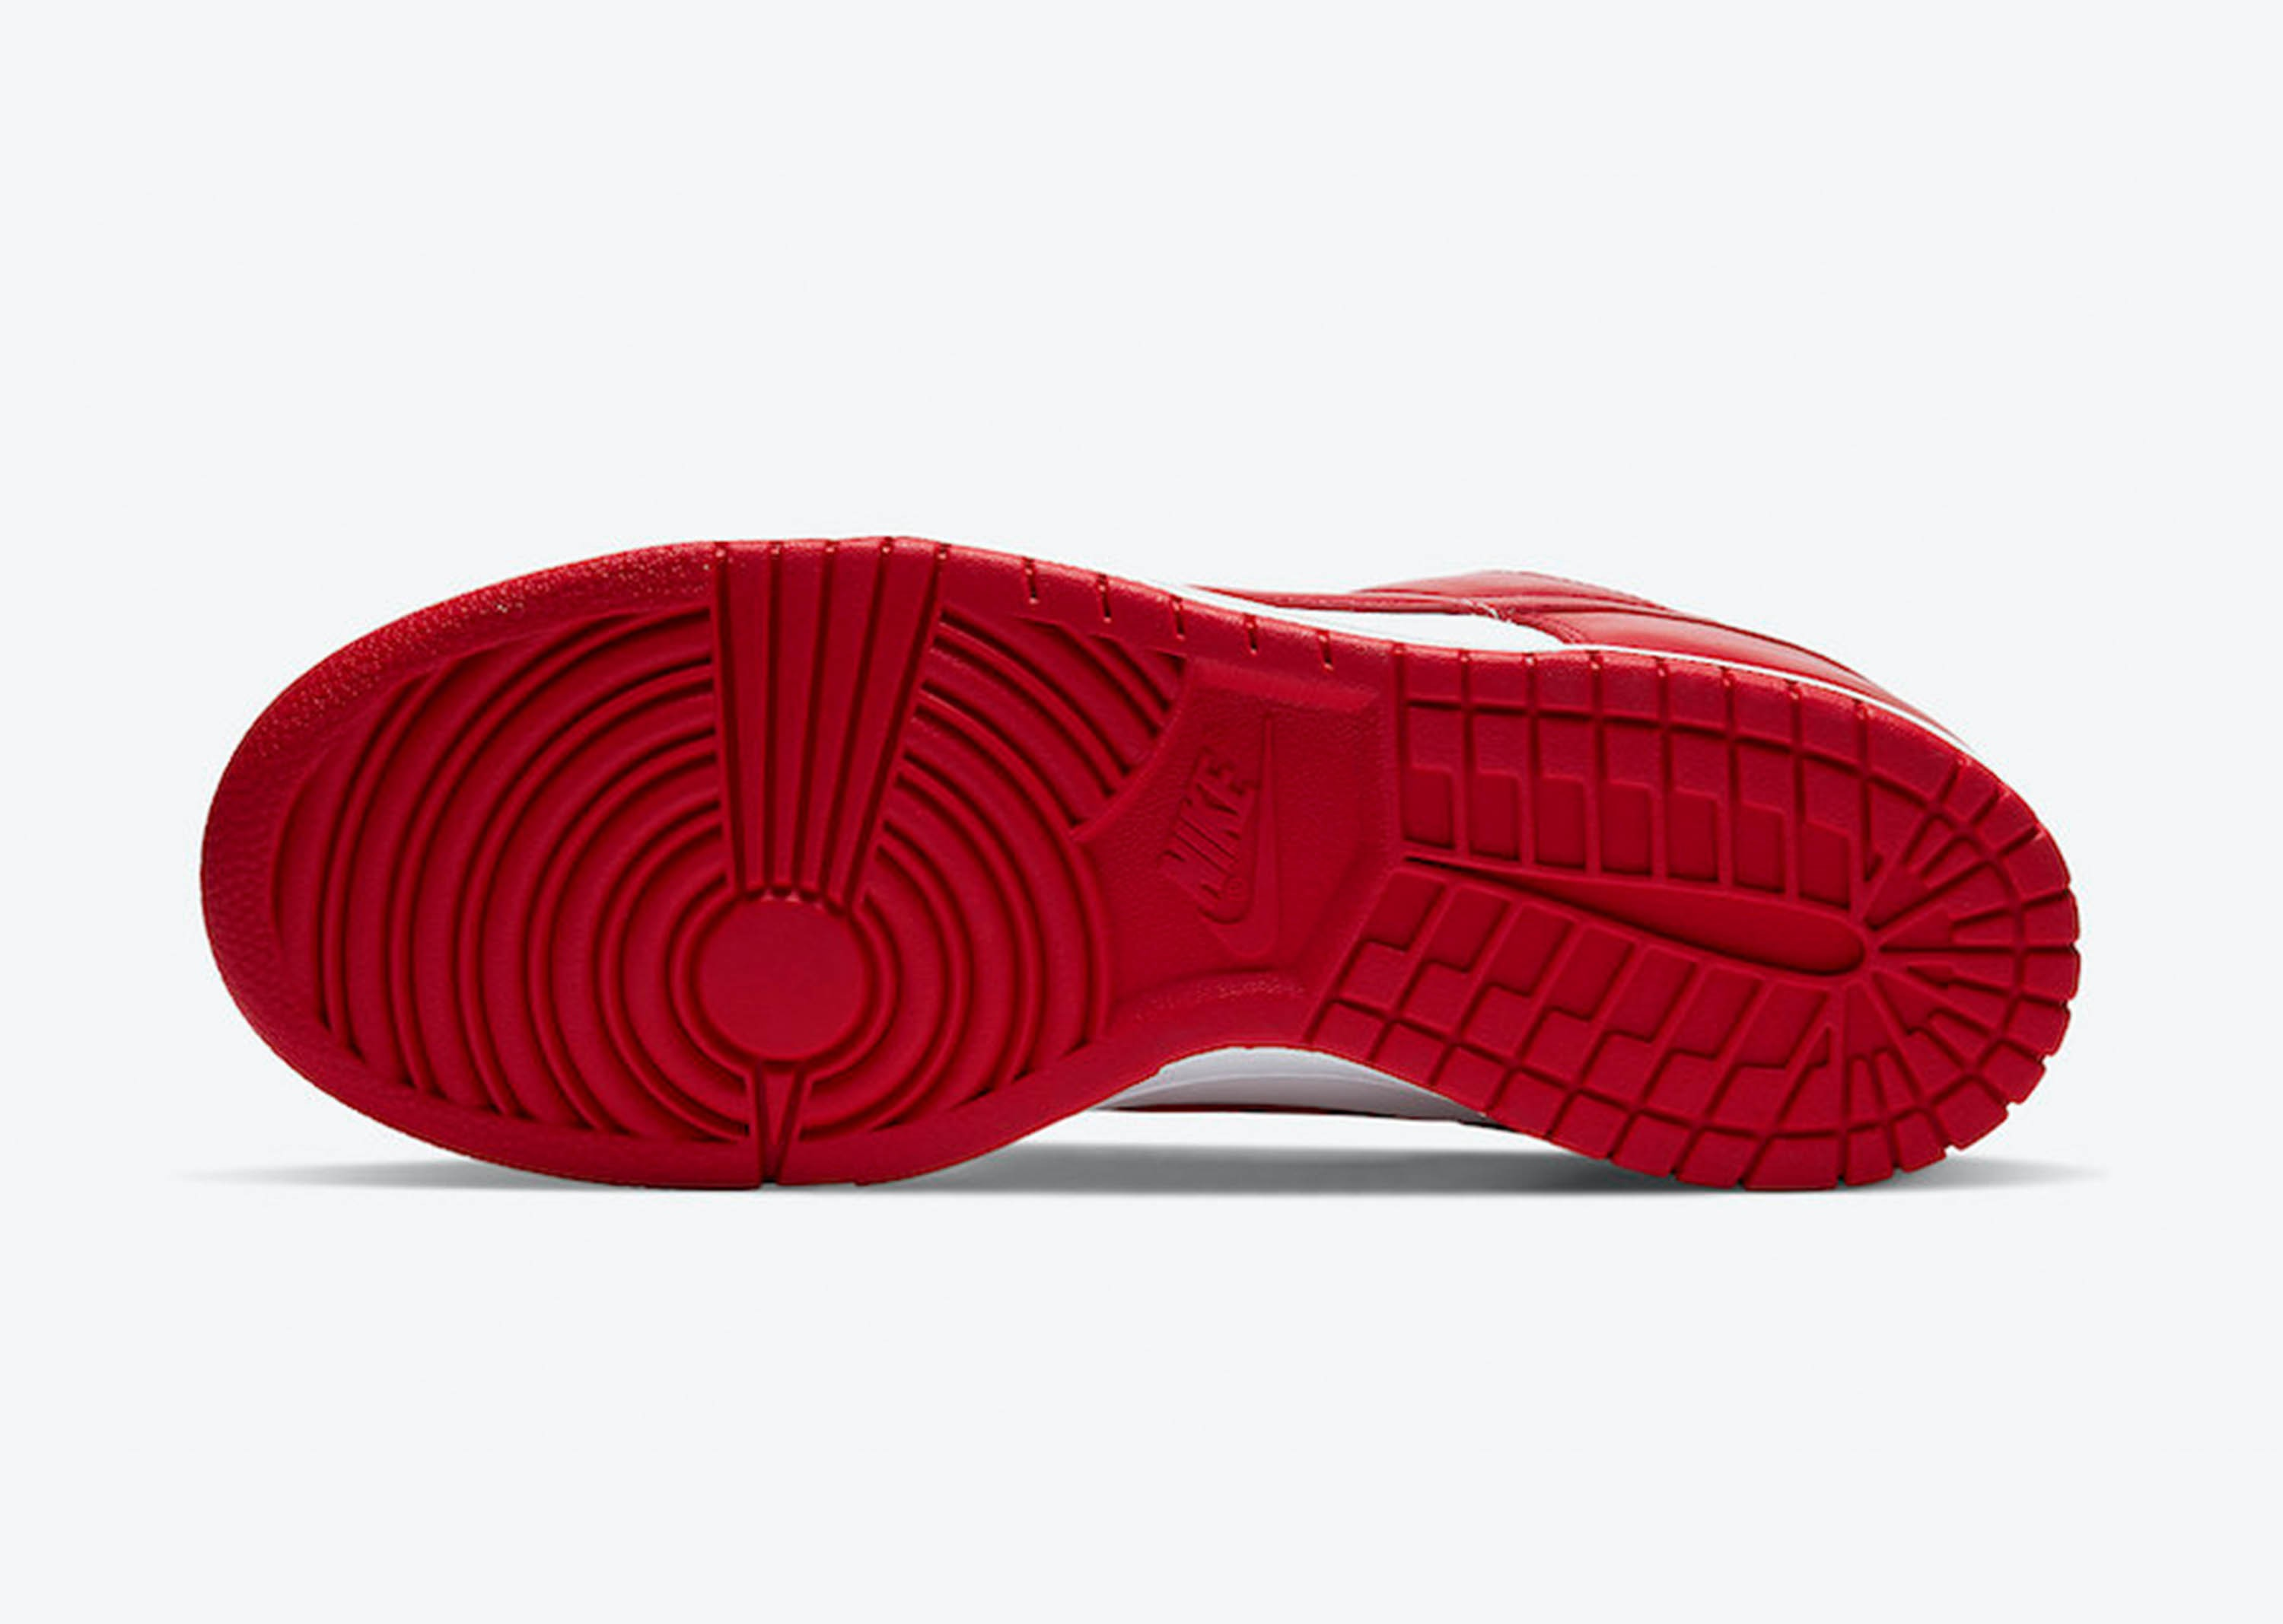 nike_dunk_low_university_red_0005_Layer 0 copy 5